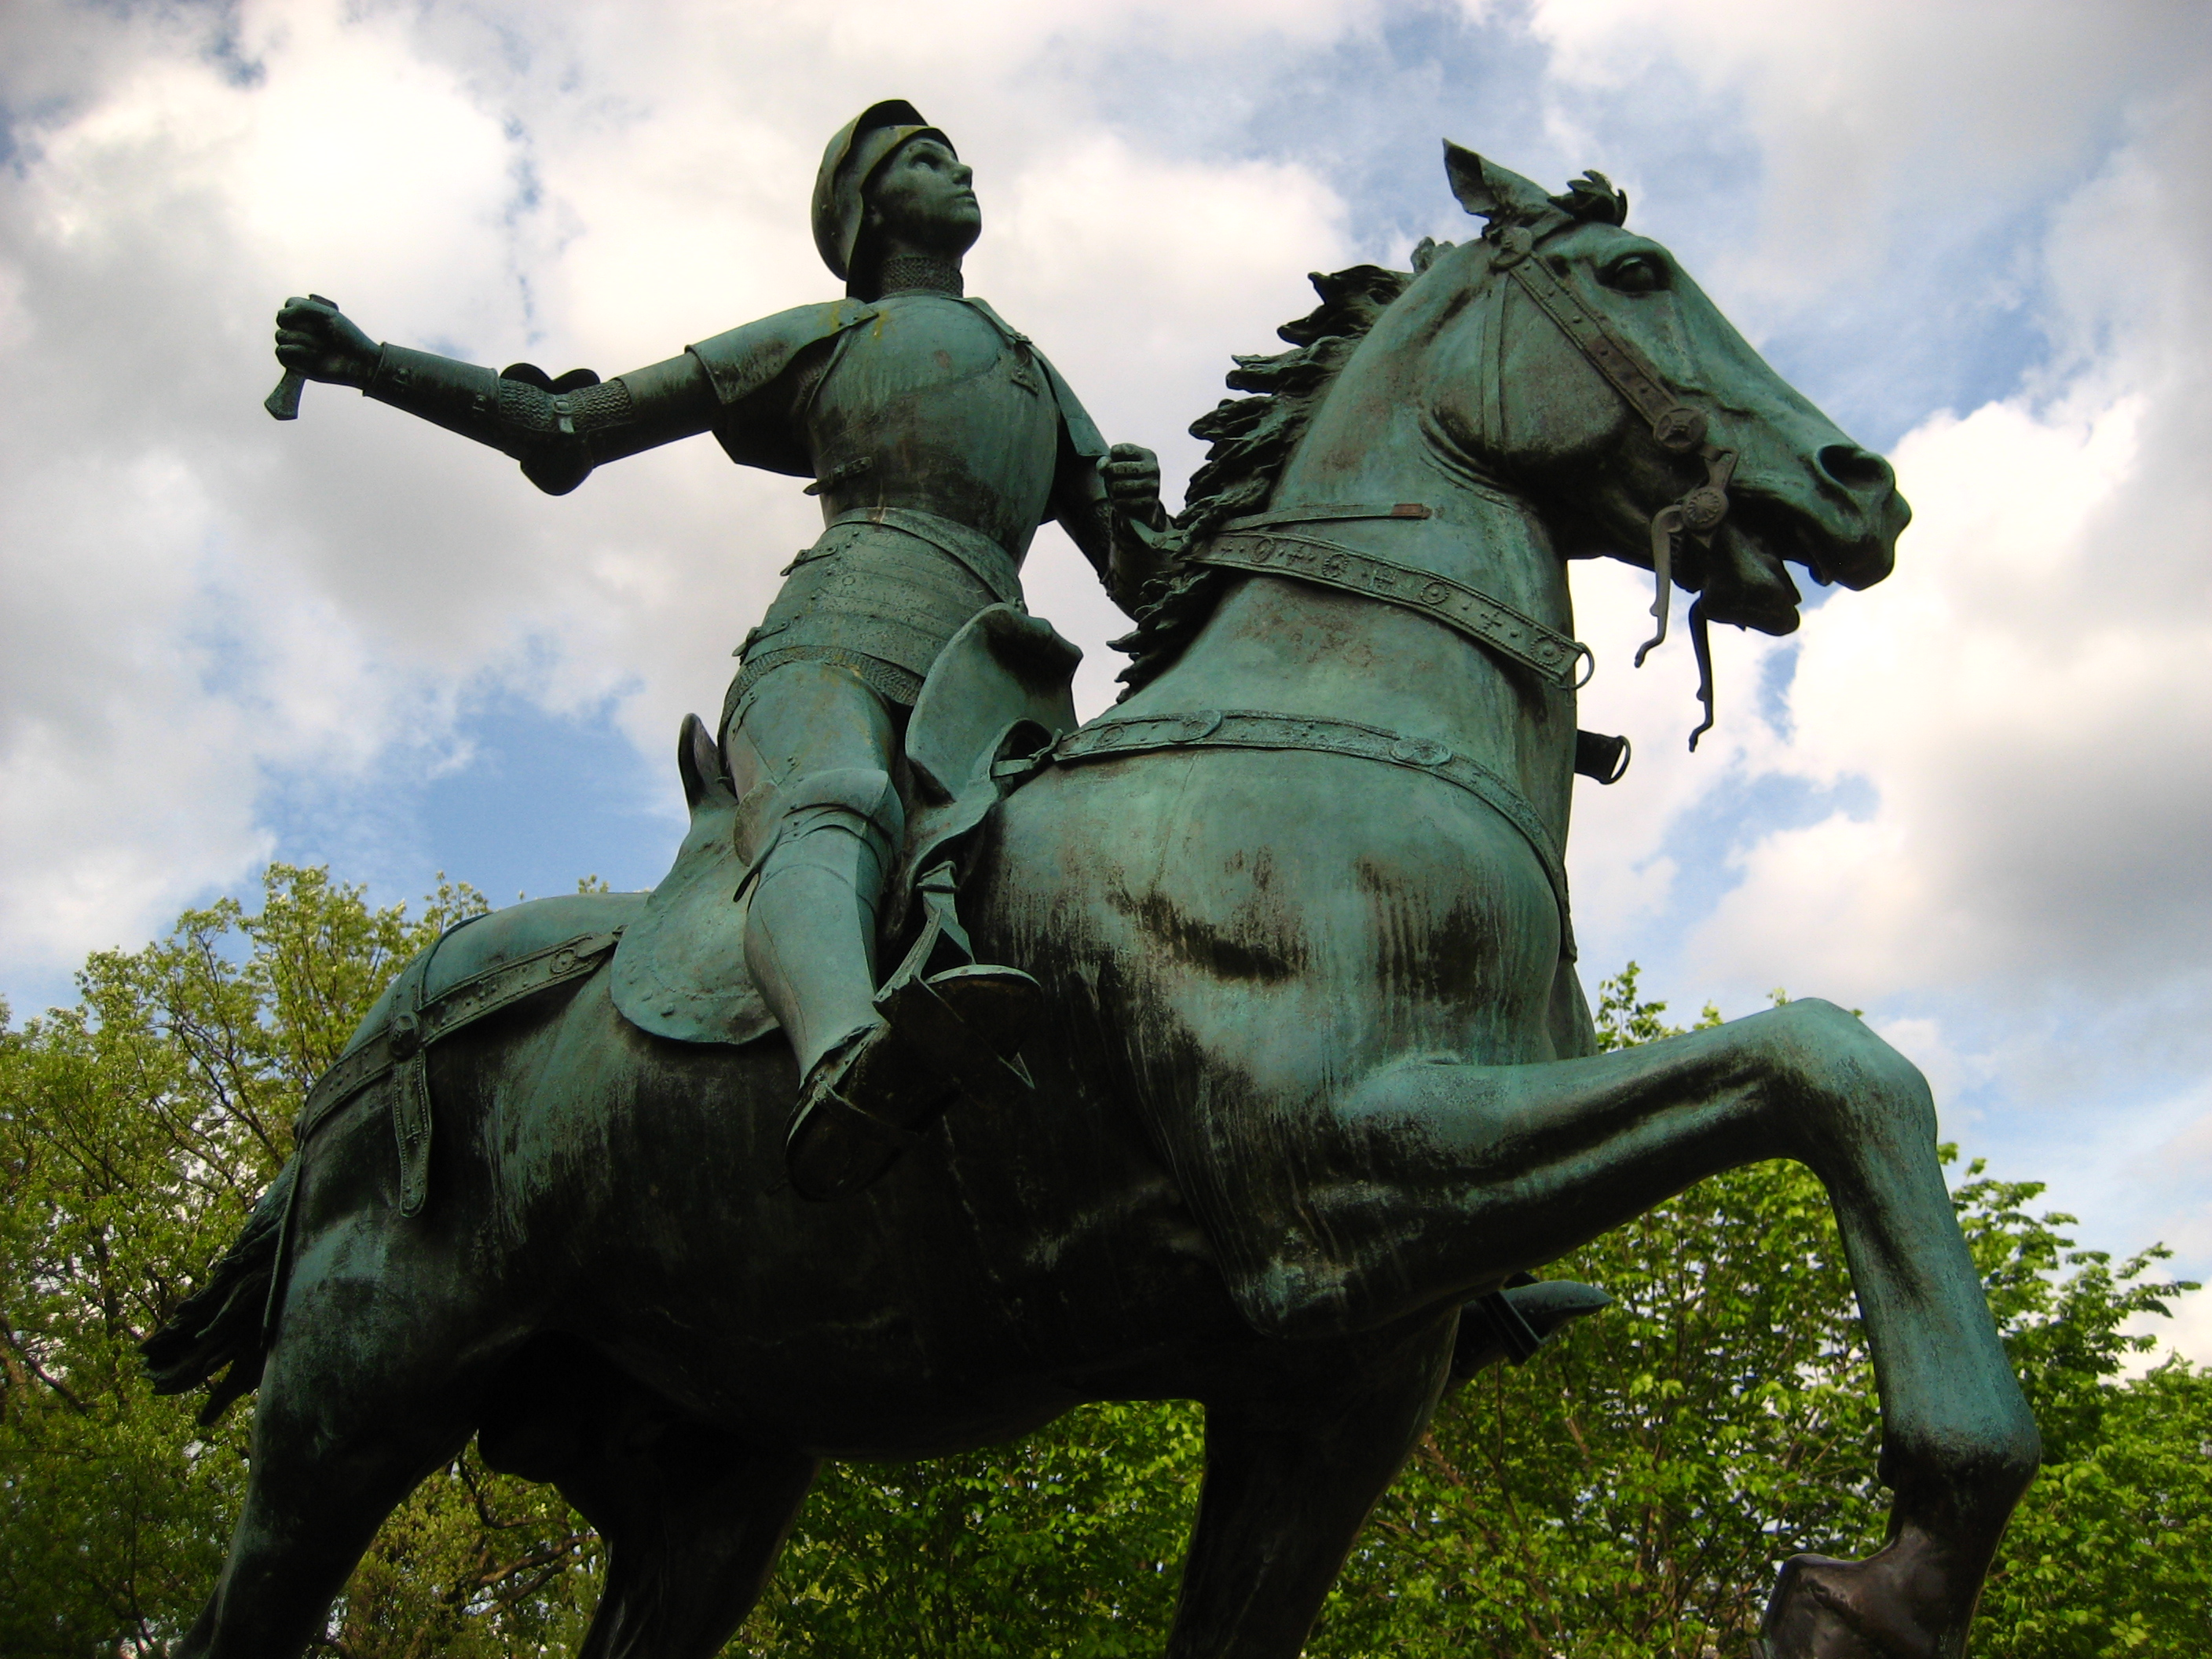 http://upload.wikimedia.org/wikipedia/commons/a/a8/Joan_of_Arc_at_Meridian_Hill_Park.jpg